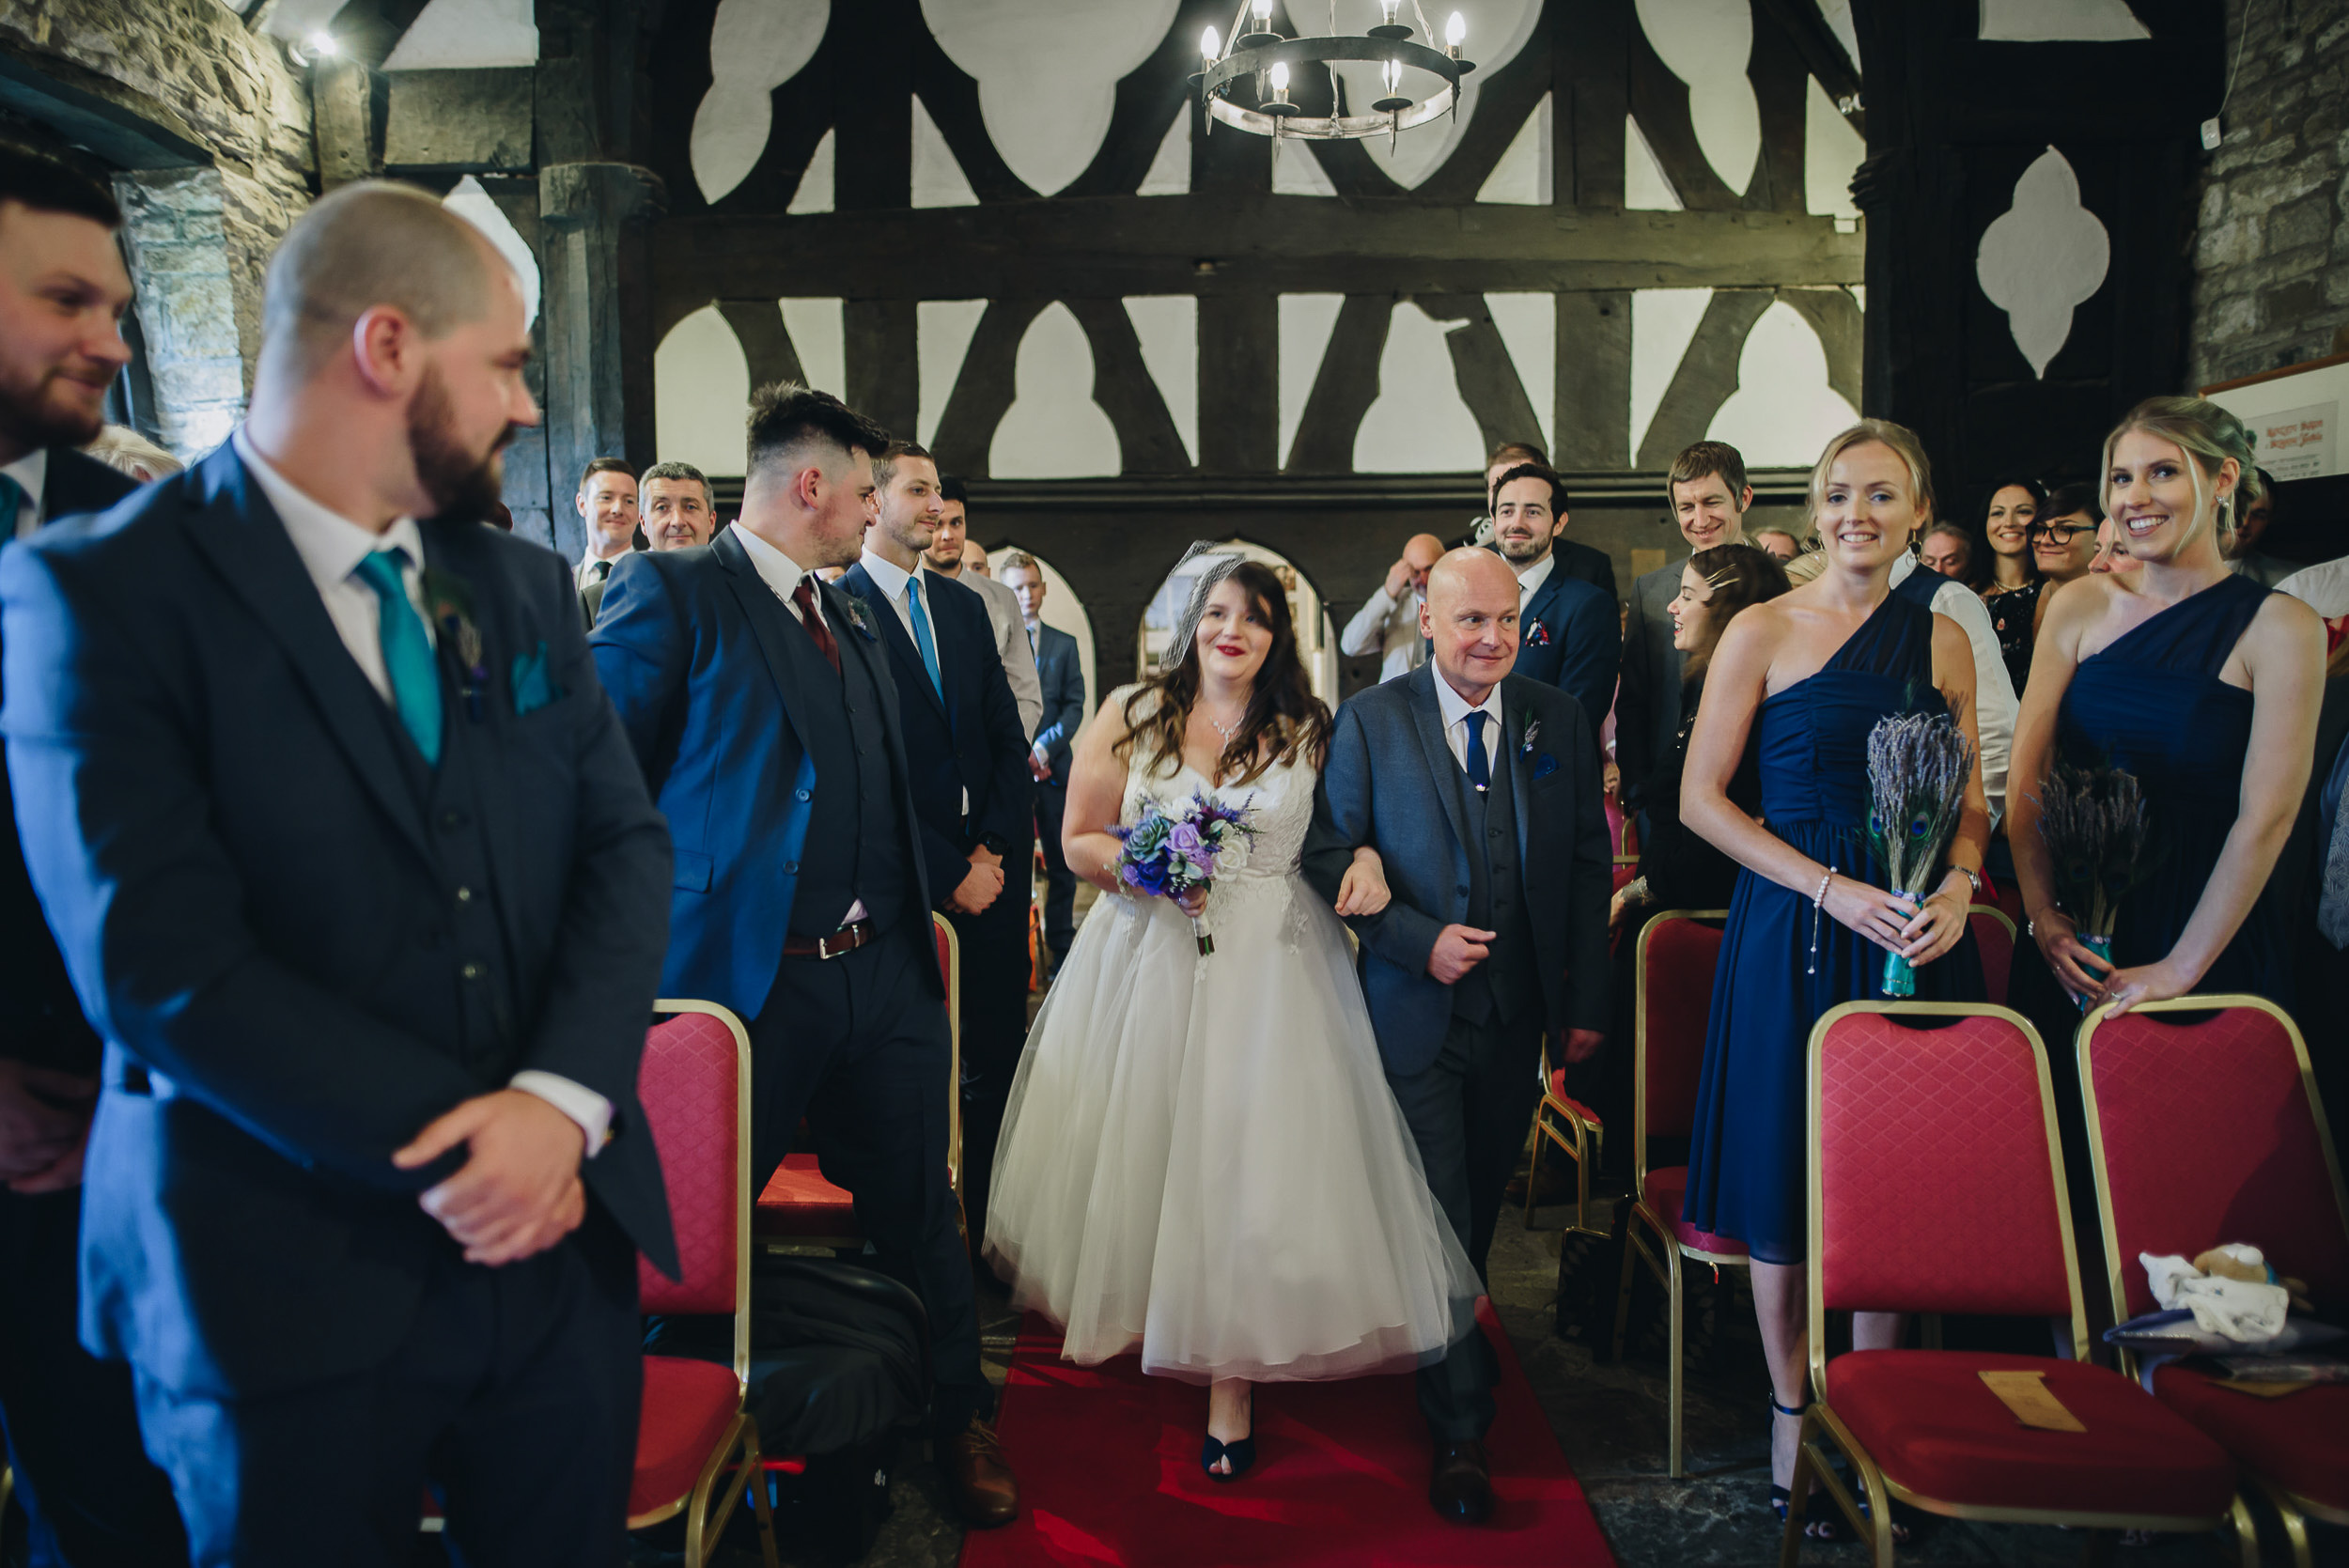 Smithills-hall-wedding-manchester-the-barlow-edgworth-hadfield-14.jpg